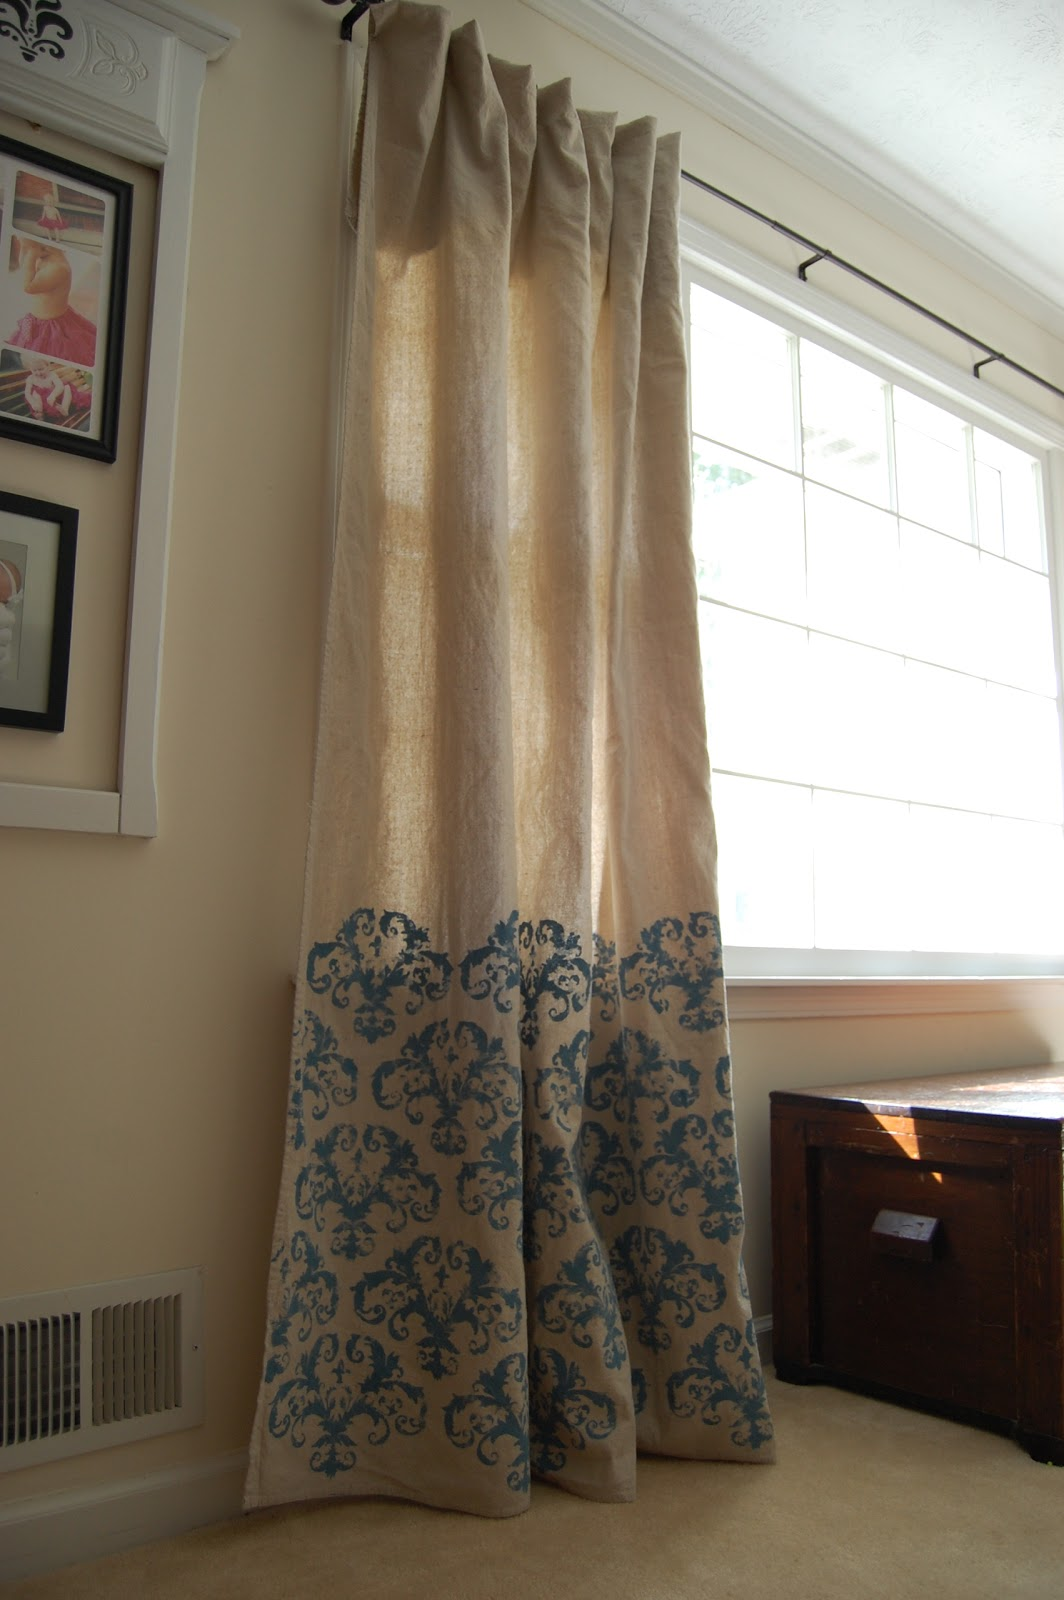 Curtain Valance Ideas: Creative Outlets Of A Thrifty Minded Momma: Stenciled Drop